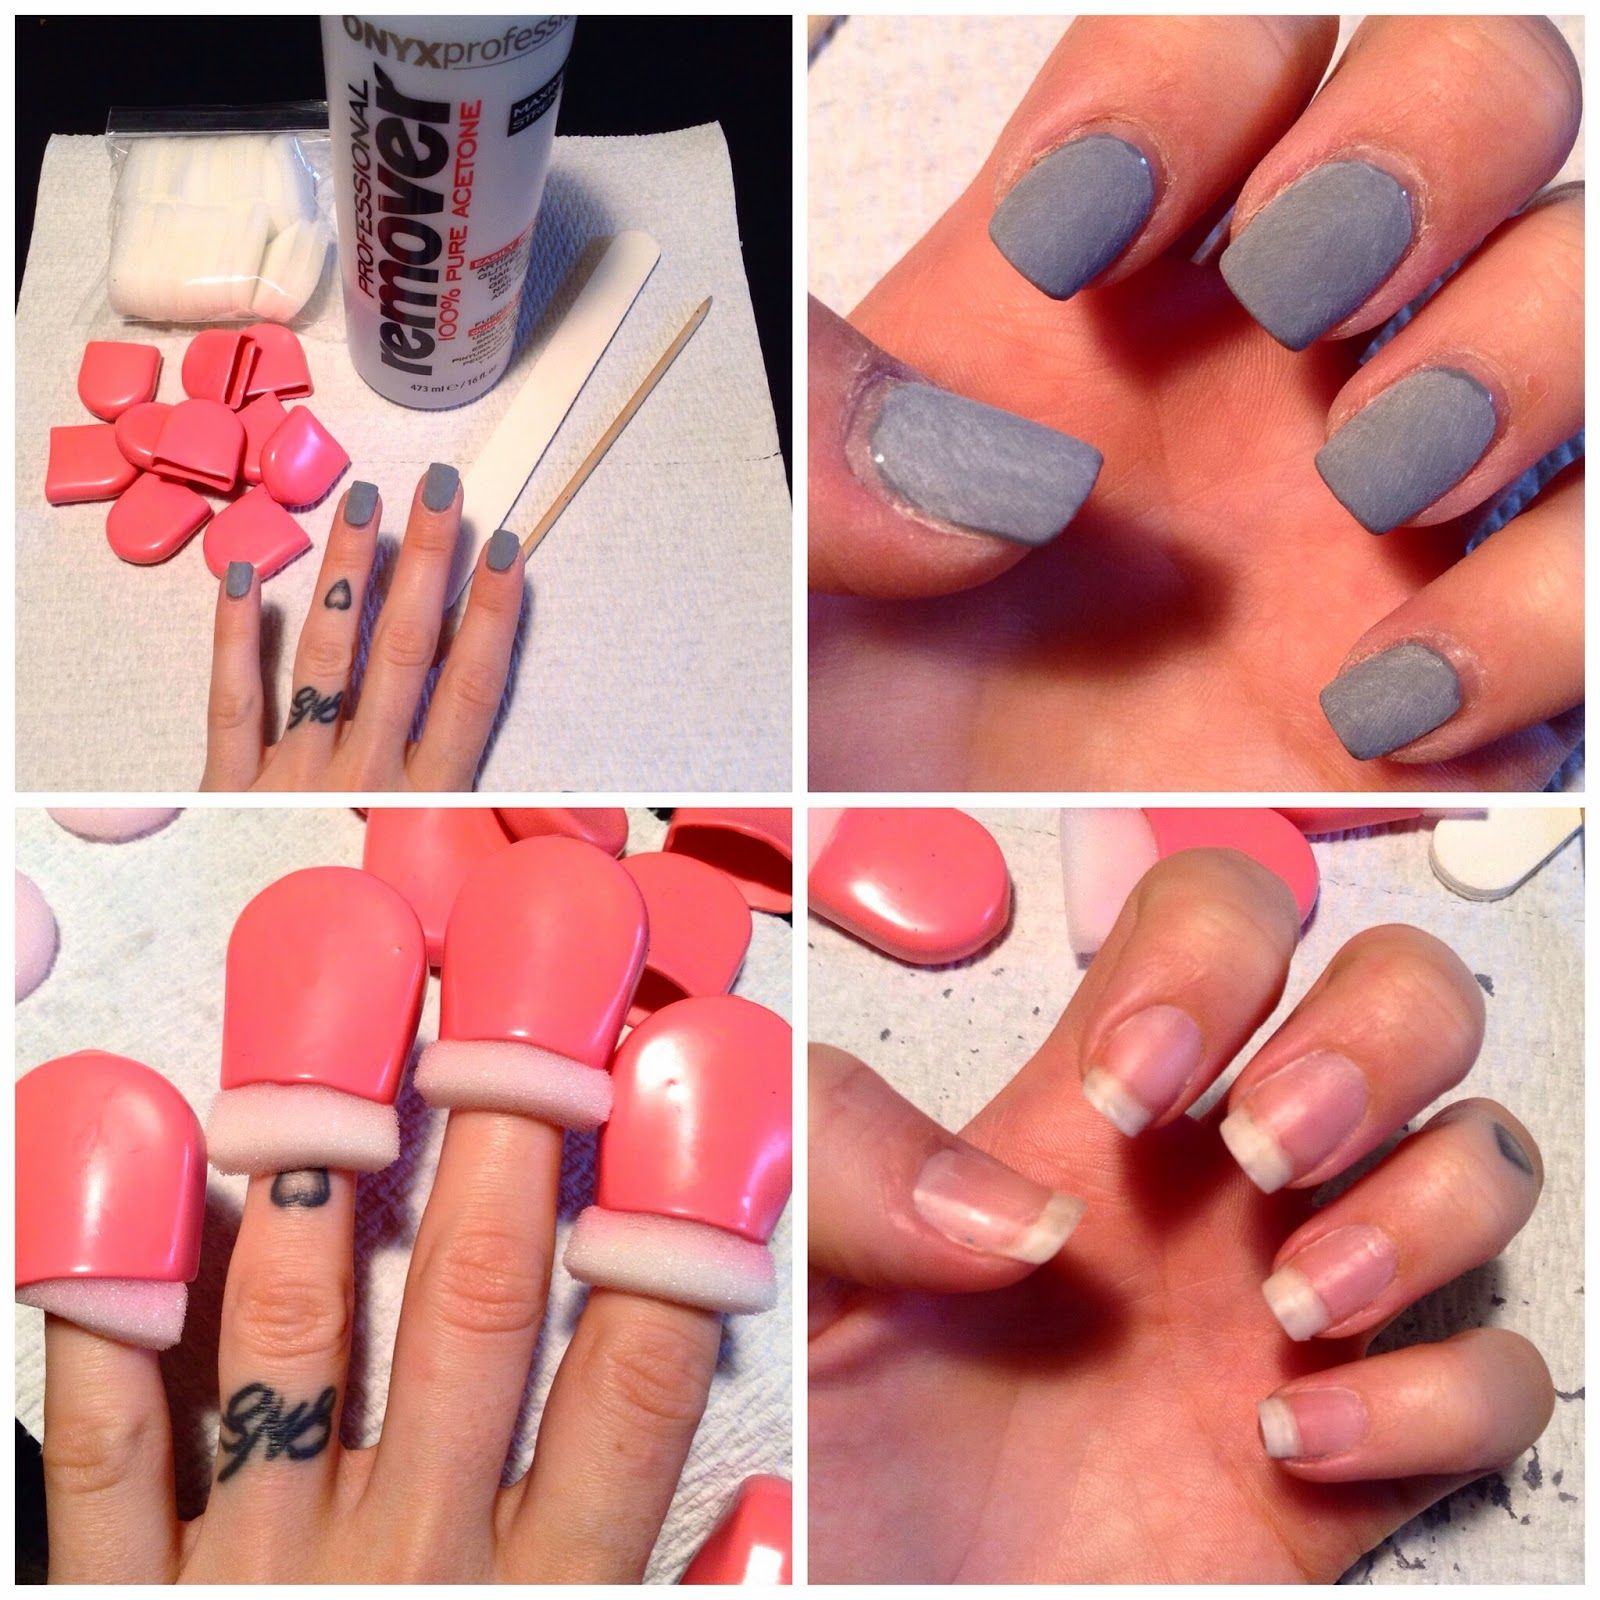 Diy Gel Nail Removal Gel Nail Tutorial Gel Nail Kit Gel Nail